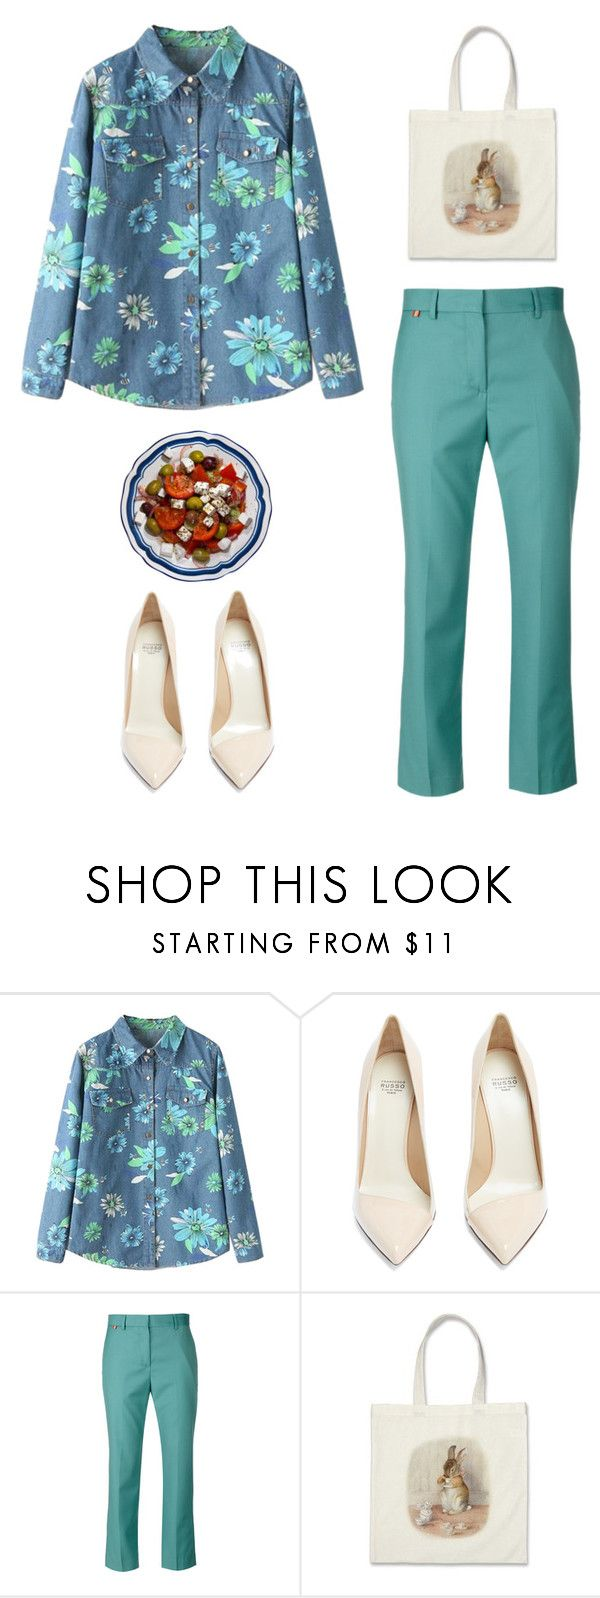 """""""Mint Pants & Denim Printshirt"""" by snorkfroeken ❤ liked on Polyvore featuring Francesco Russo, Paul Smith, Spring, floral, Pumps and DenimStyle"""